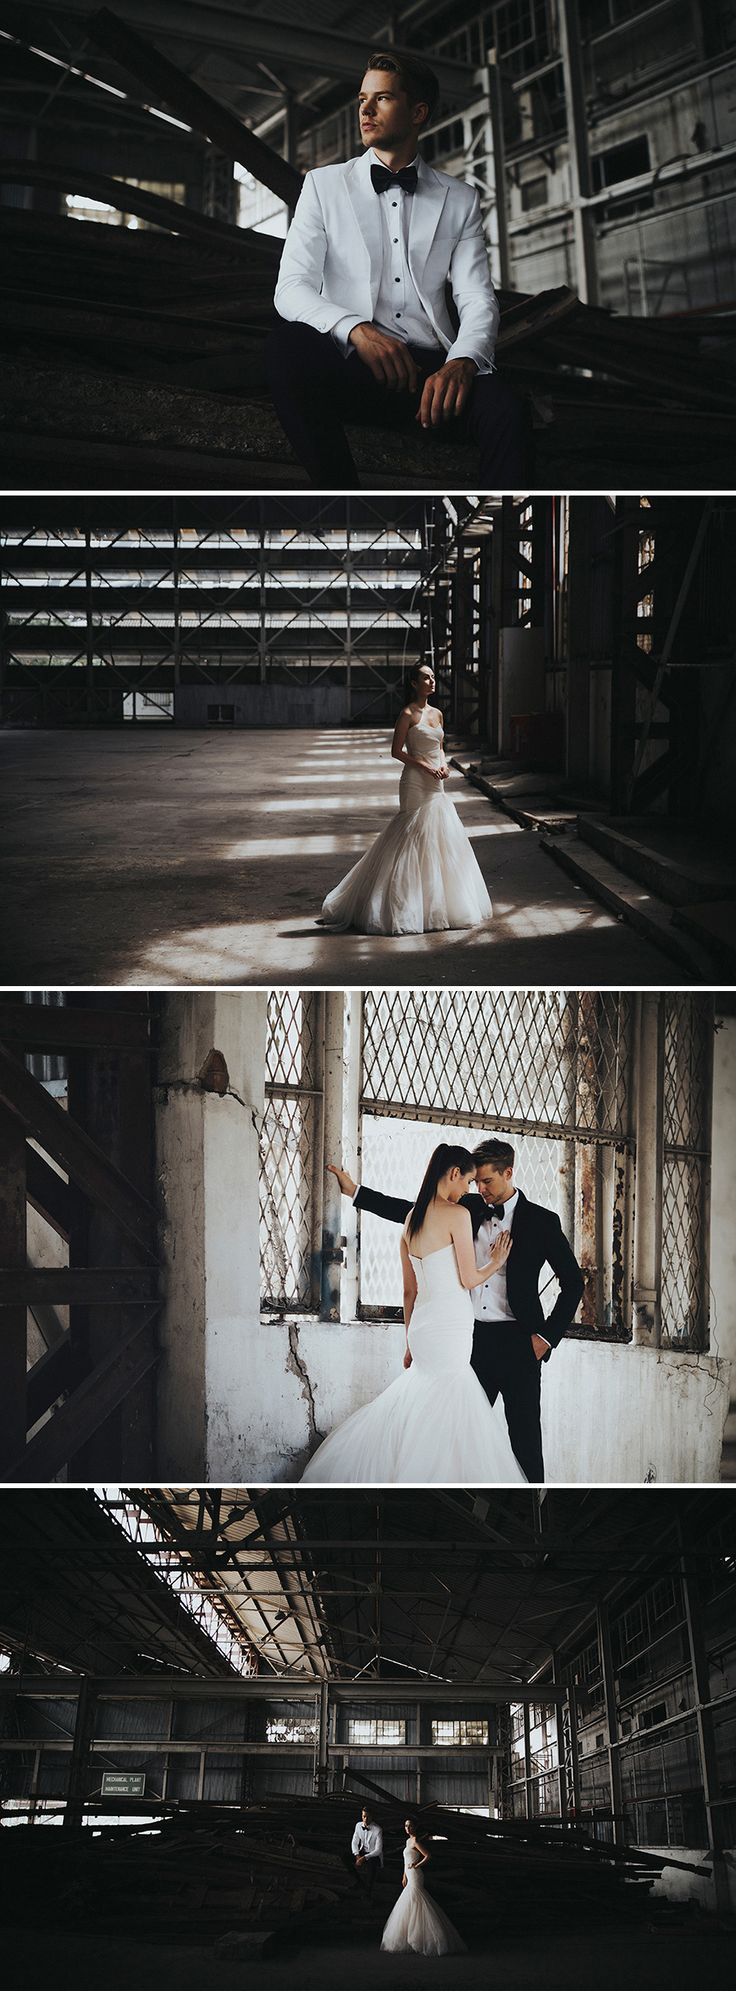 Beautiful shots against old buildings with dark lighting and a timeless grace // Gazetted for conservation, the former Kallang Airport was Singapore's first commercial international airport, touted as one of the most modern airports of its time. Its rich history was the perfect complement to the moody industrial vibes that the airport contributed to this styled shoot with AndroidsinBoots, The Proposal Bridal, Wong Hang Distinguished Tailor and The Make Up Room.